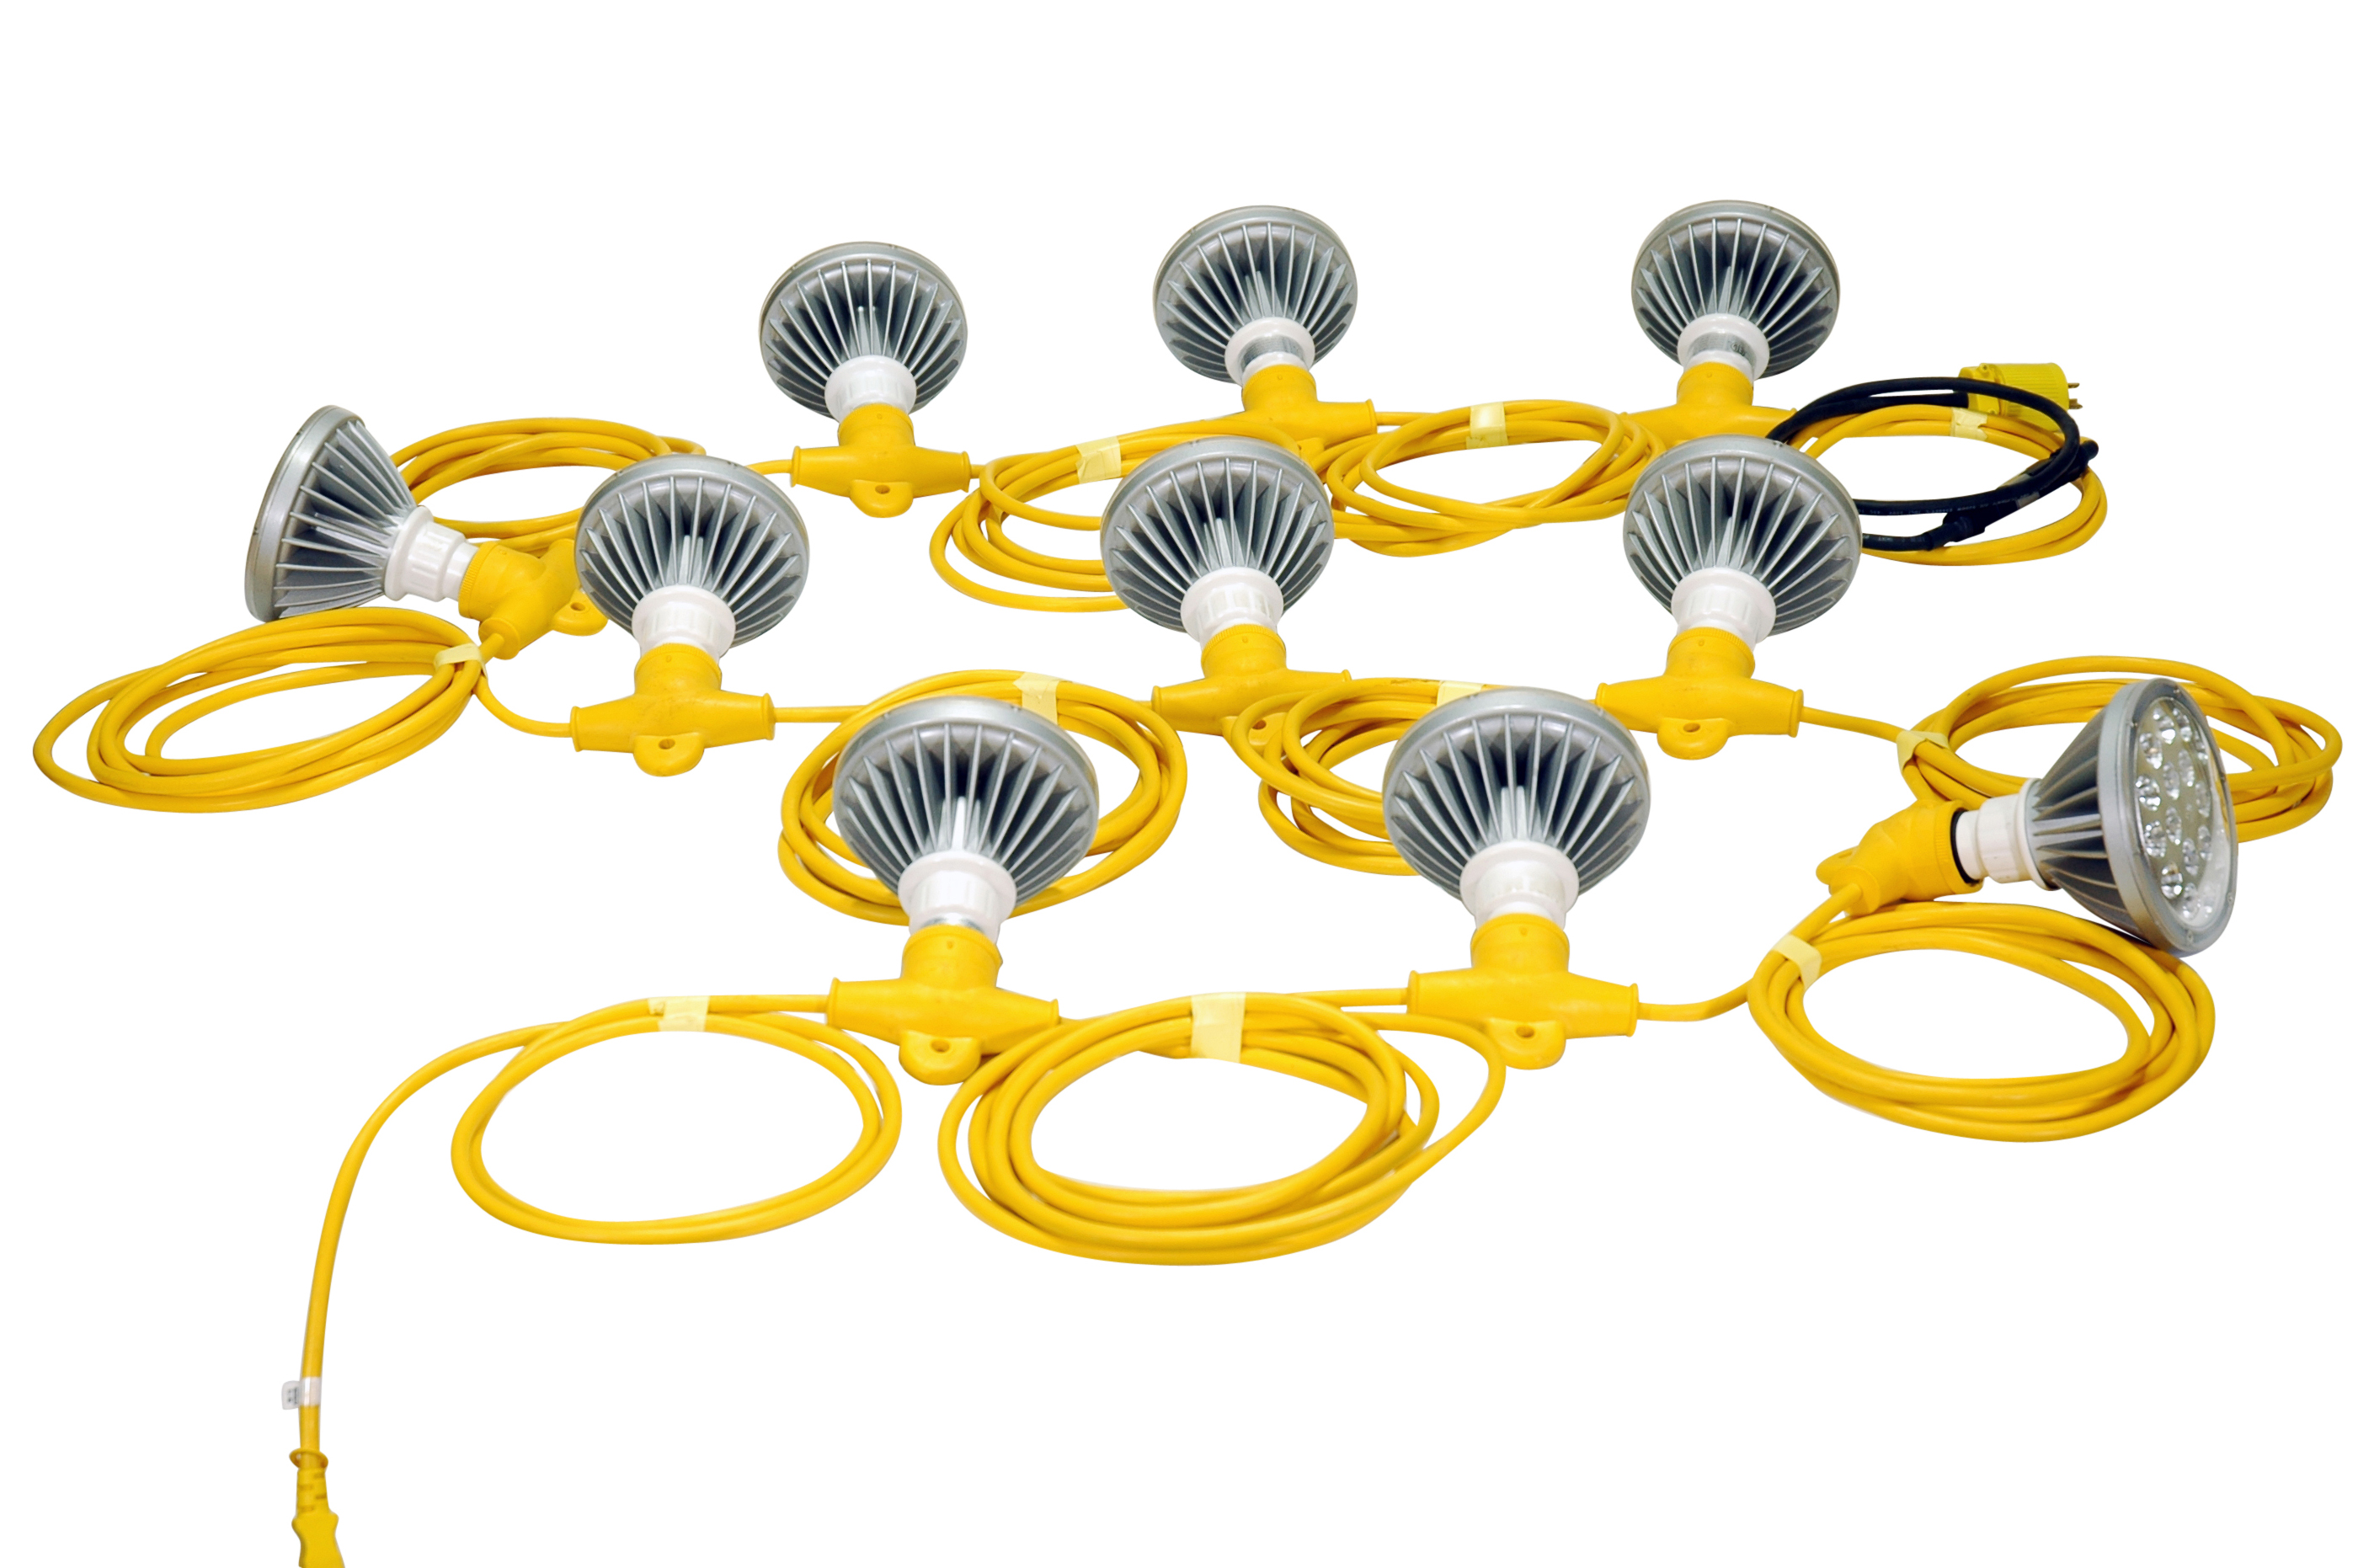 250 Watt Temporary Construction LED String Lights Released by Larson Electronics